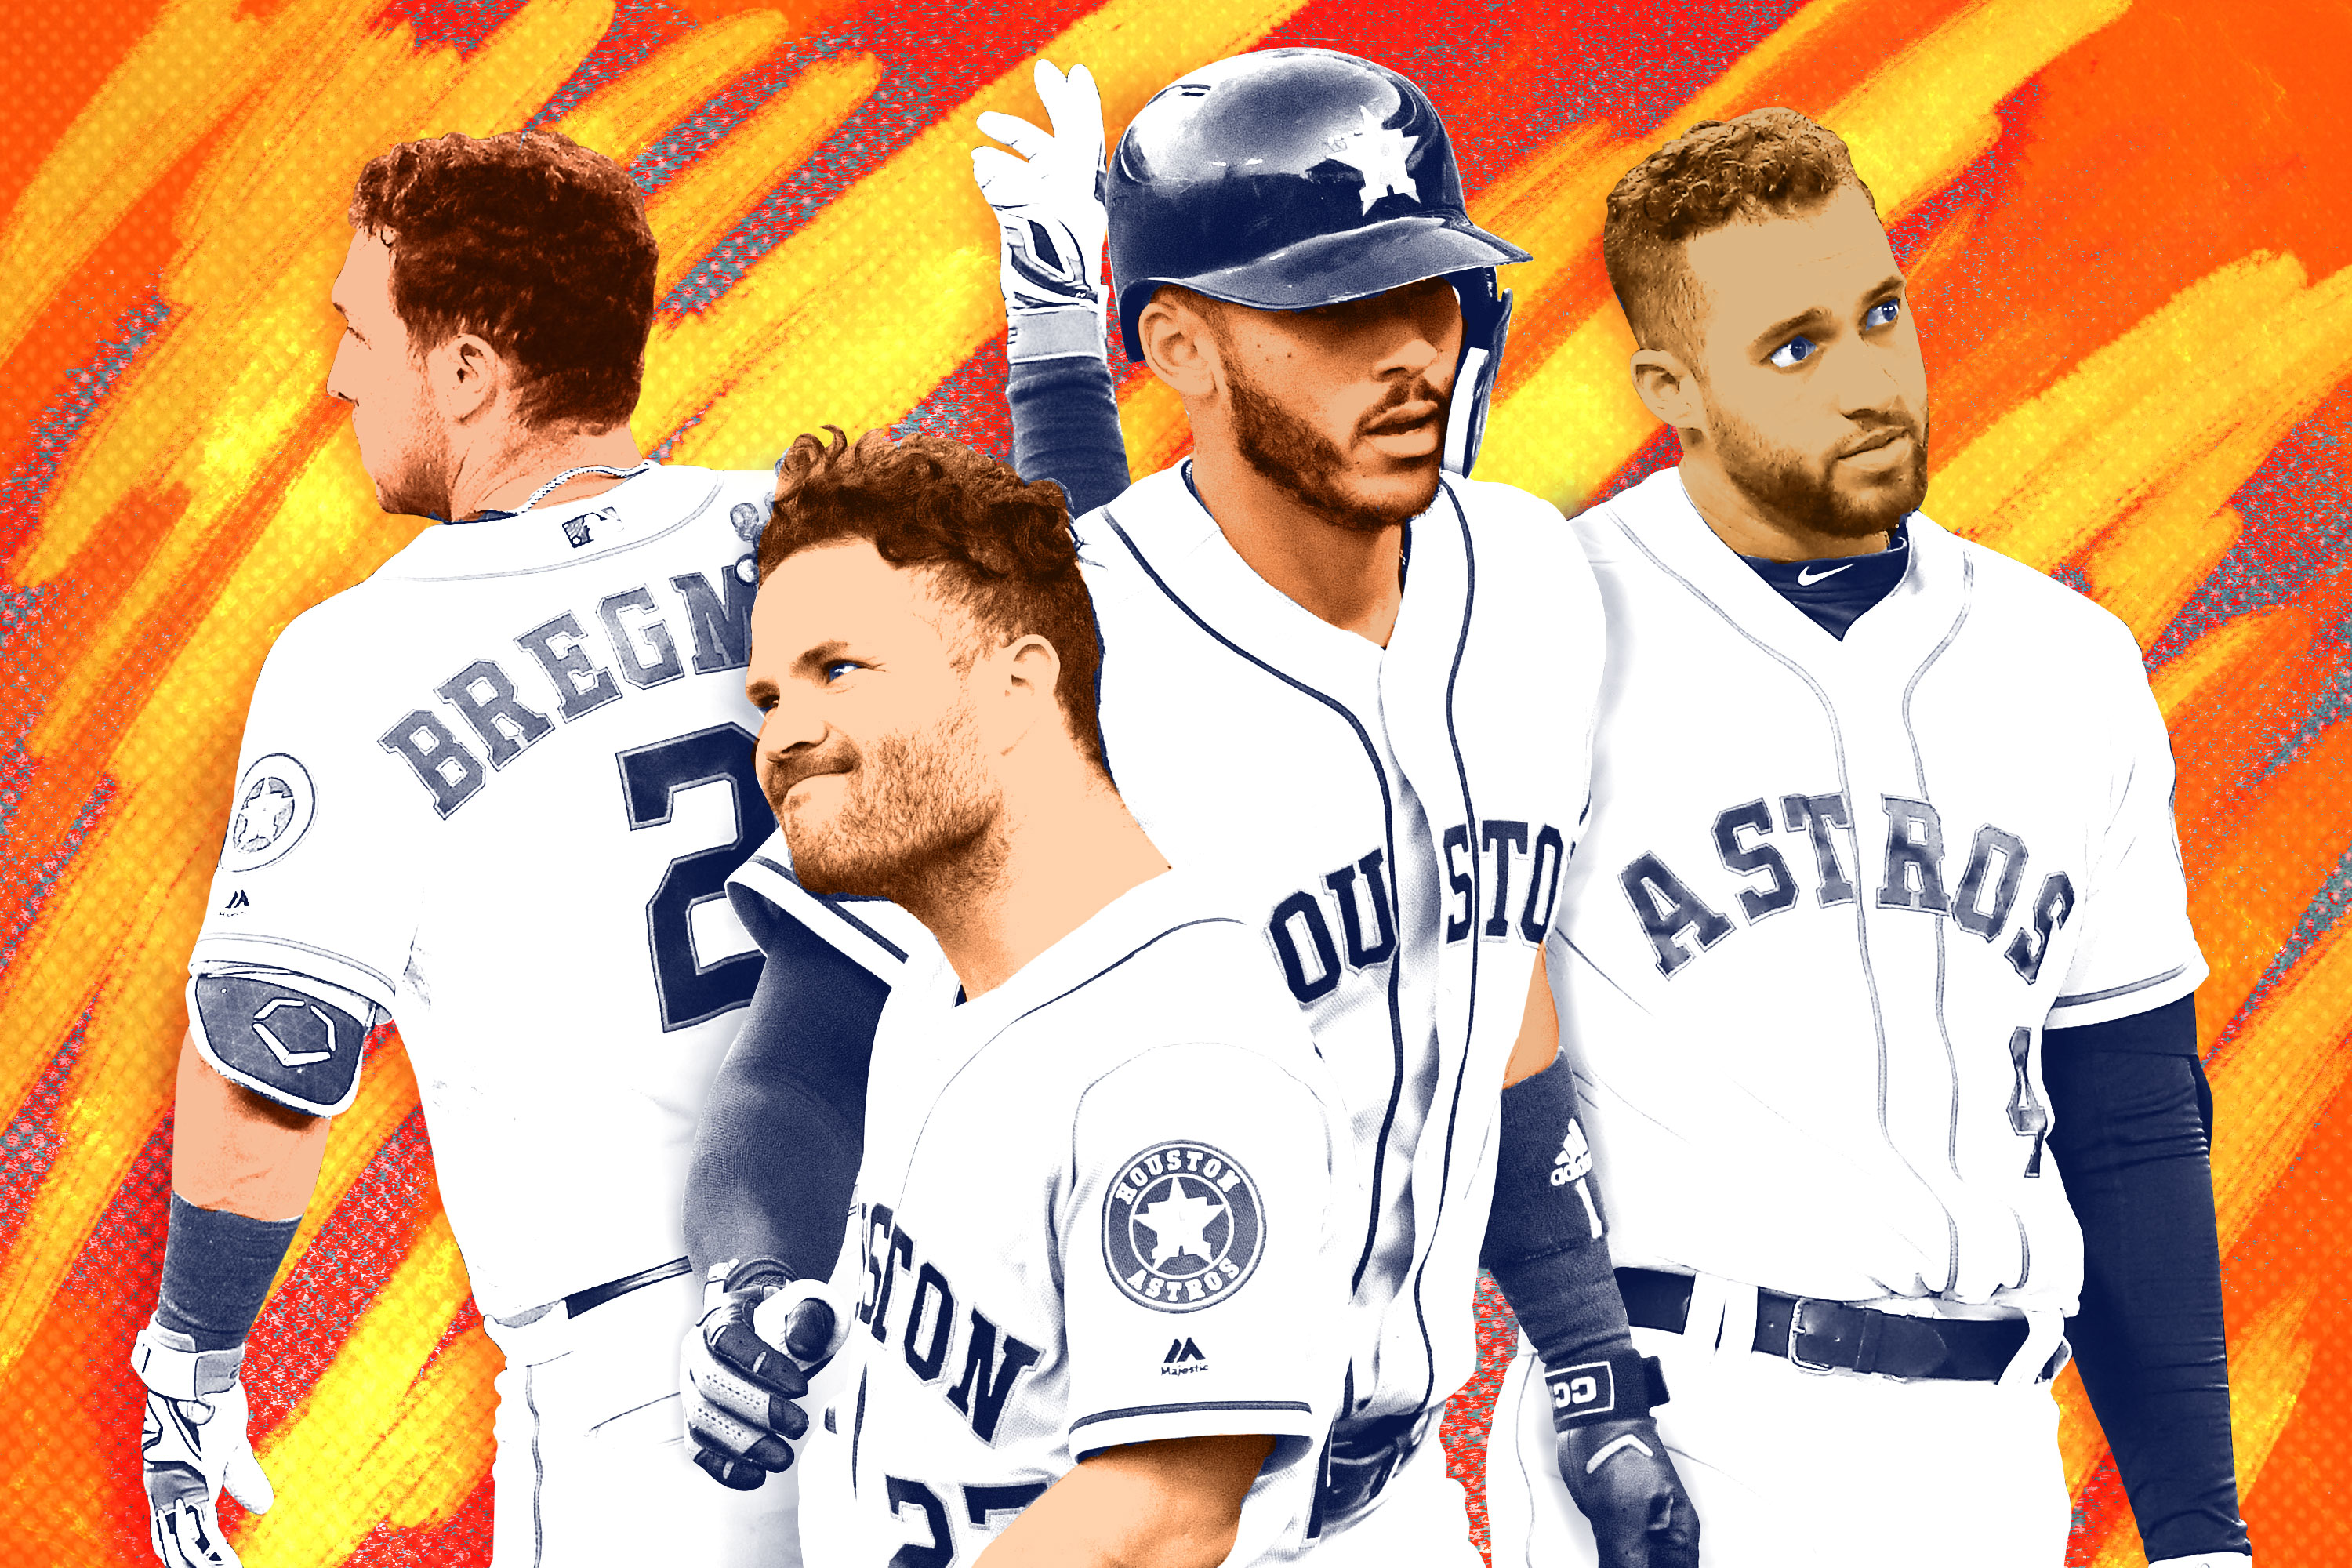 Oh Yeah, The Astros Have The Best Lineup In The